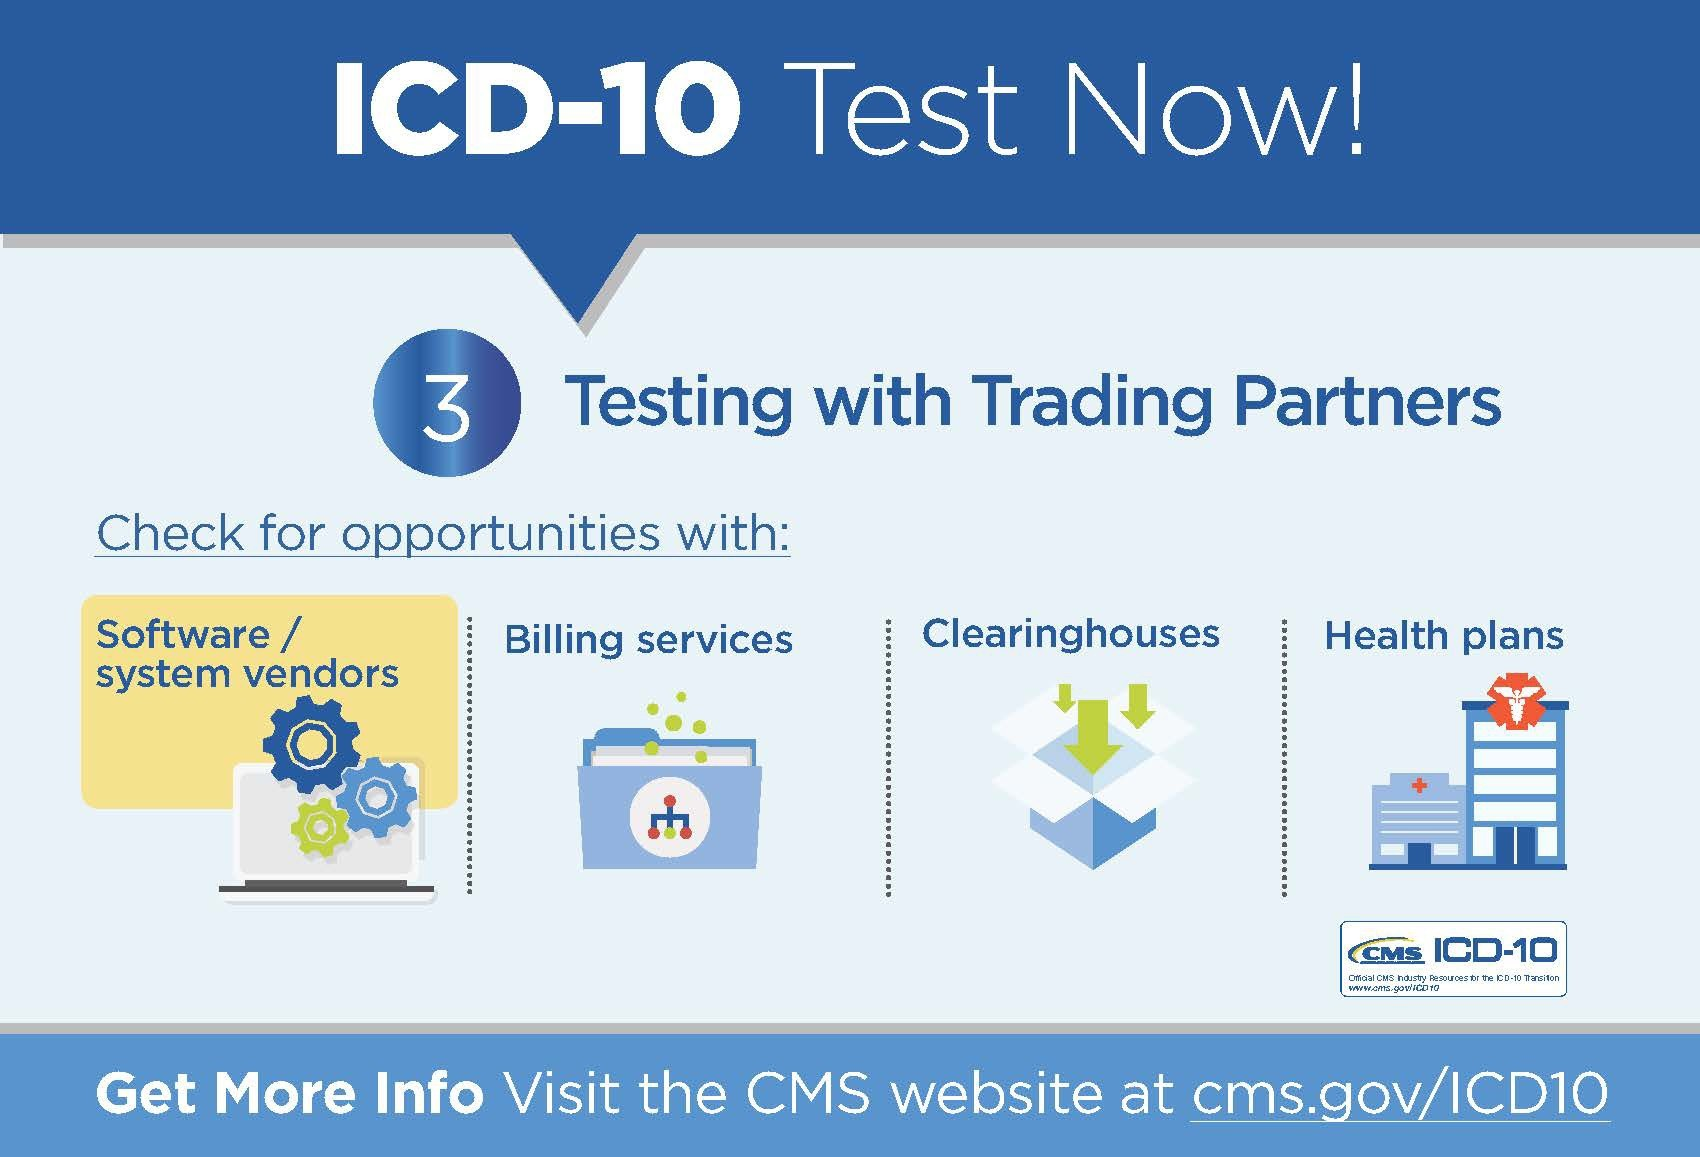 ICD-10-testing-with-trading-partners